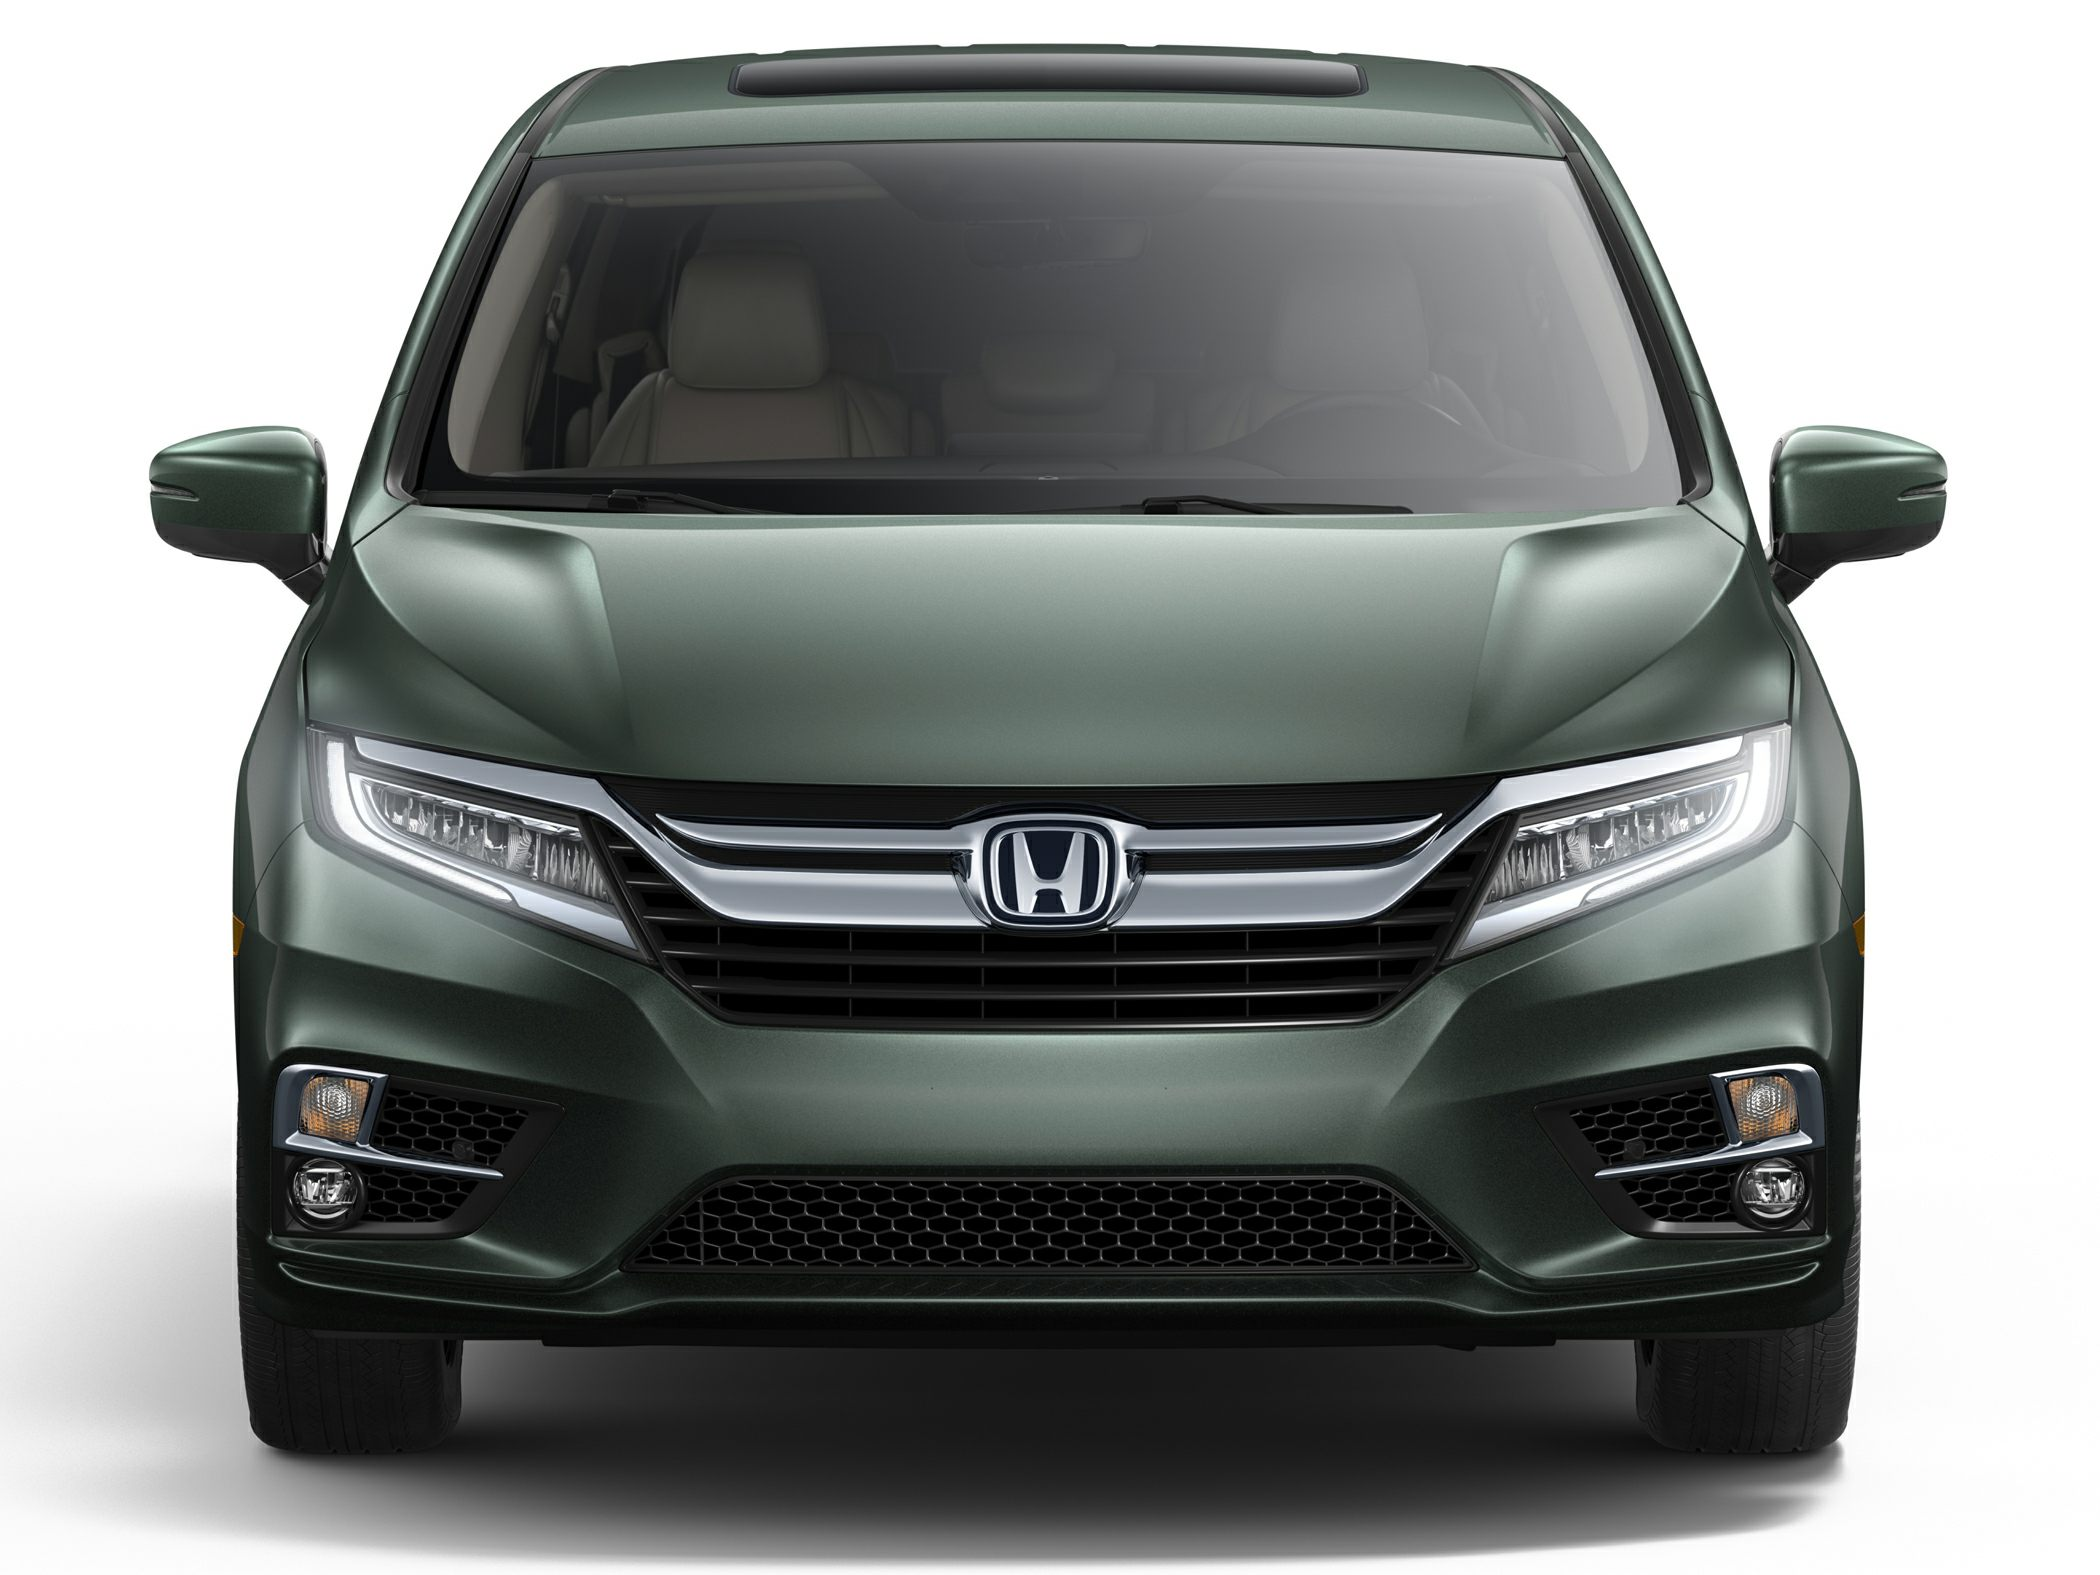 leases honda two prices any discussion at i with why dealers mark these page and is appear m car wondering assistance lease deals forums pilot appreciated figures the off